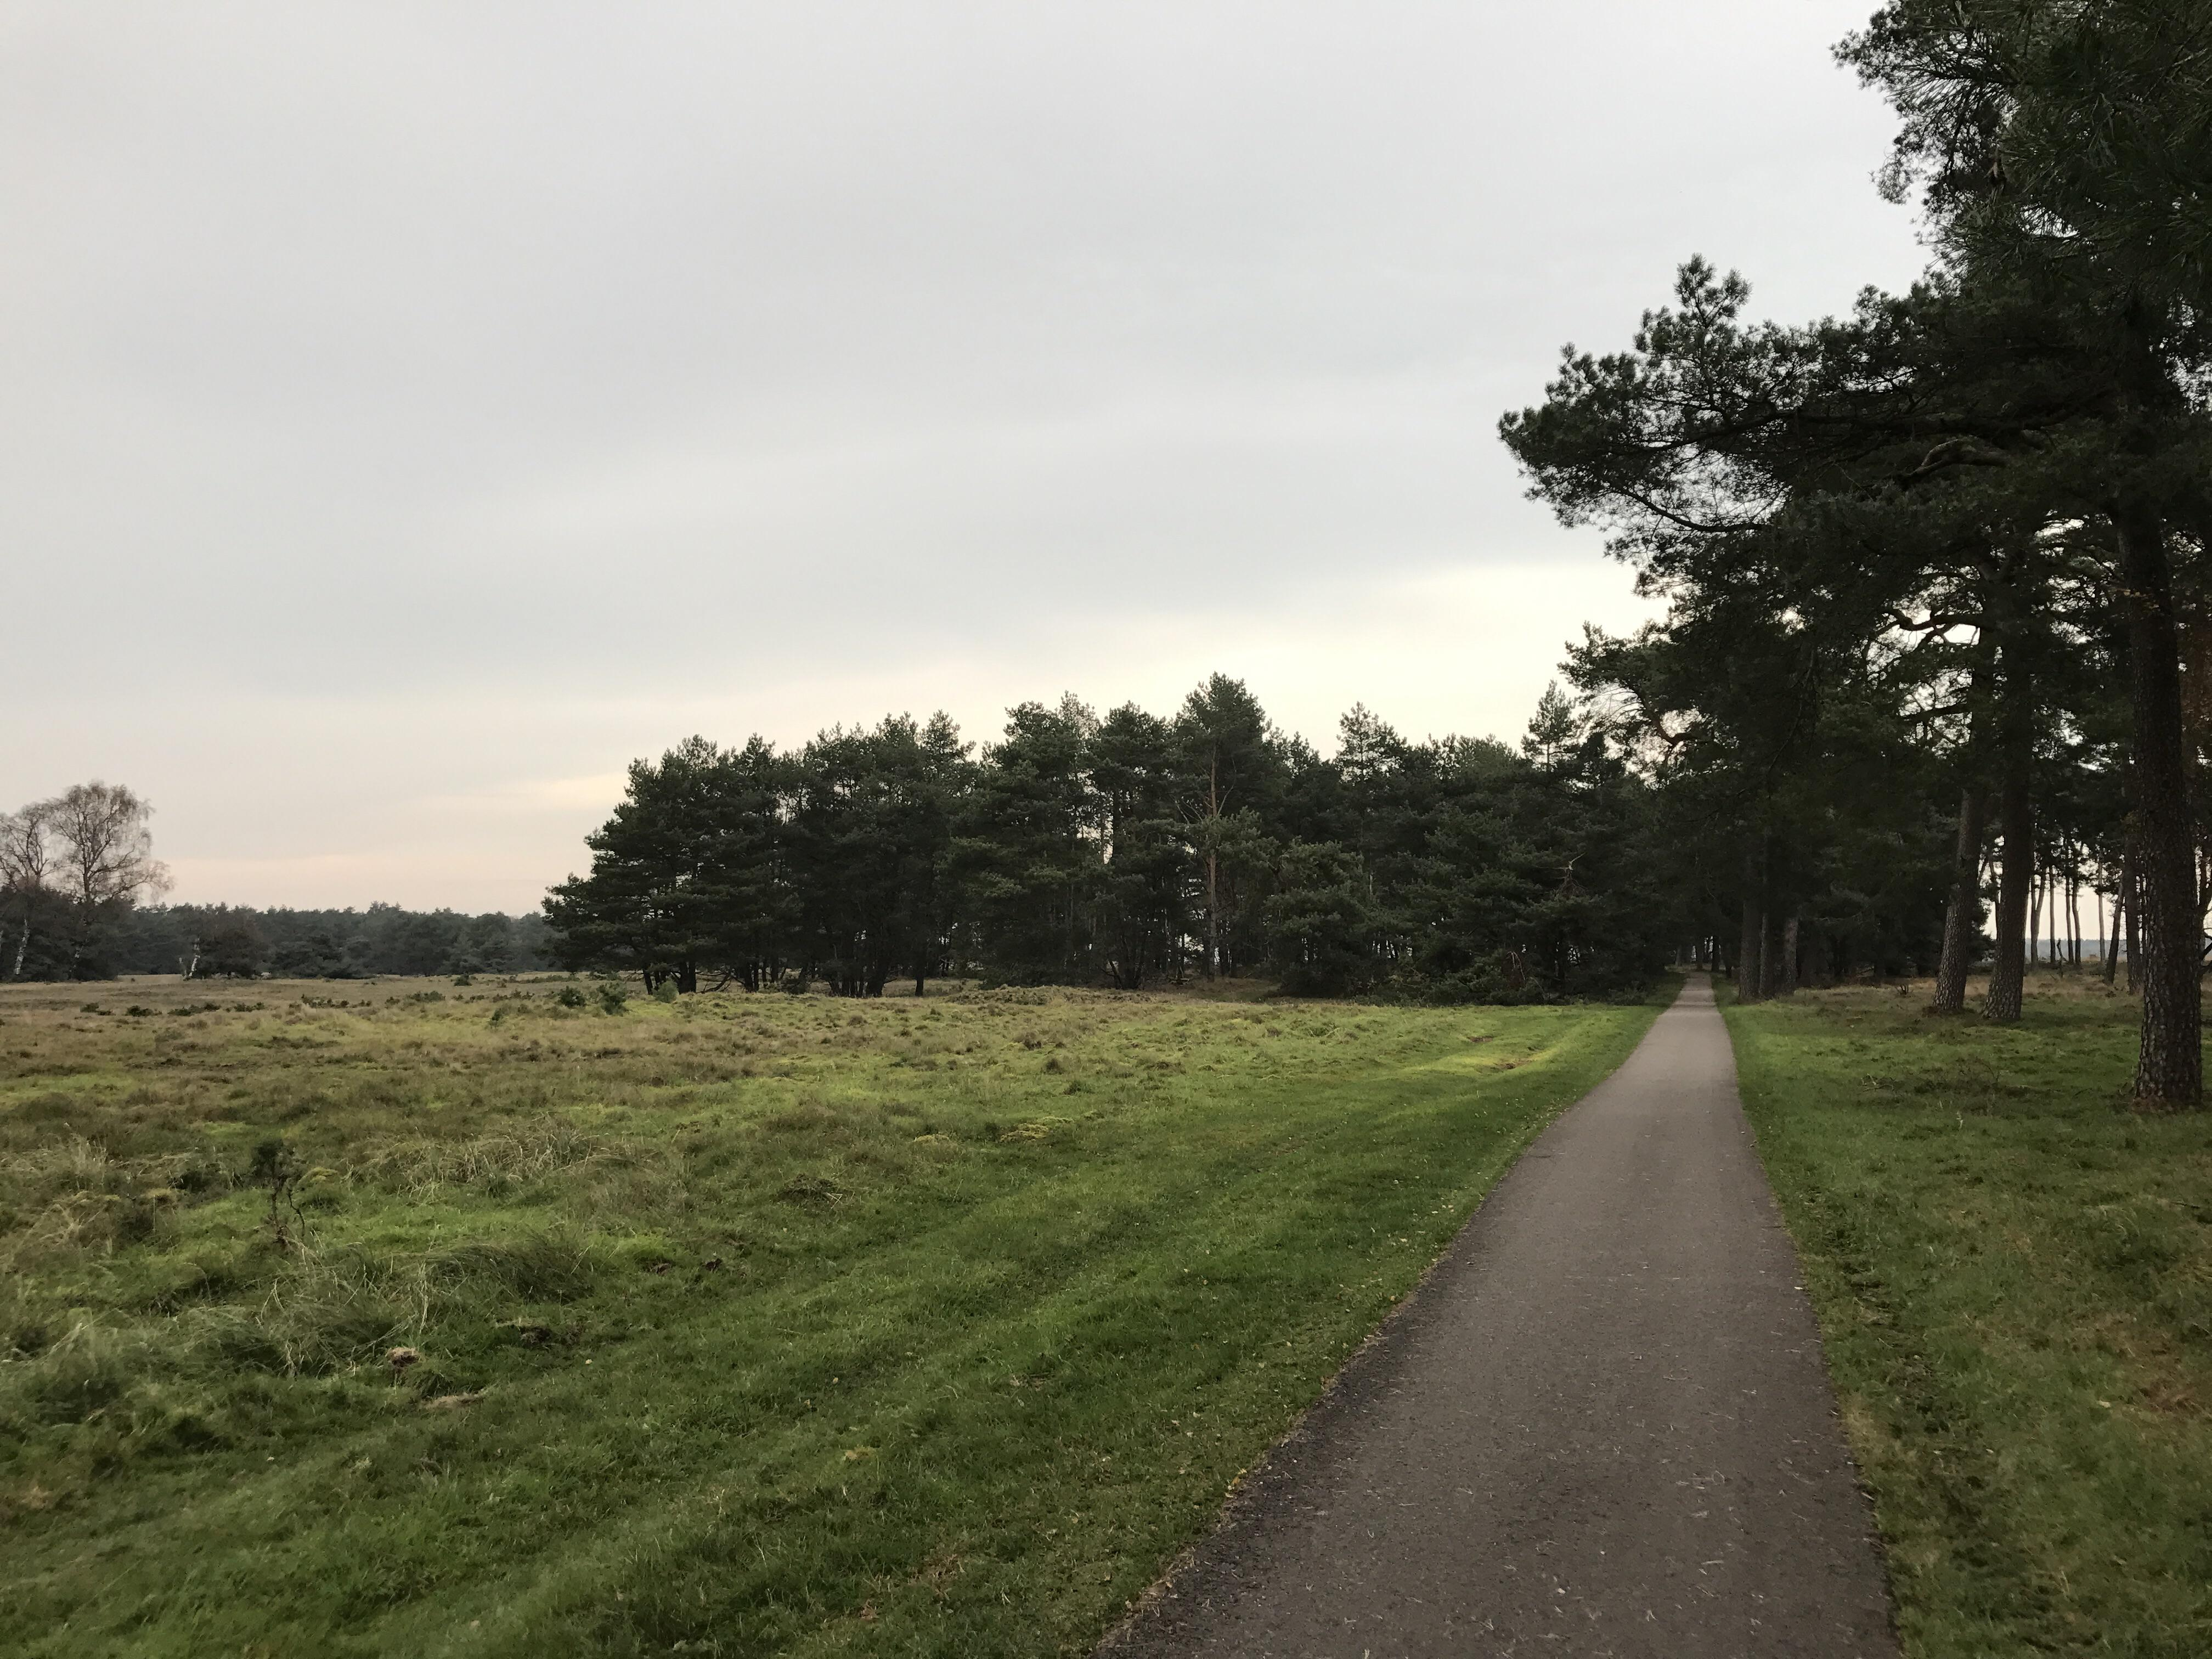 Hoge Veluwe Day Trips from Amsterdam, Took a day trip to Het Nationale Park De Hoge Veluwe today. Less ...